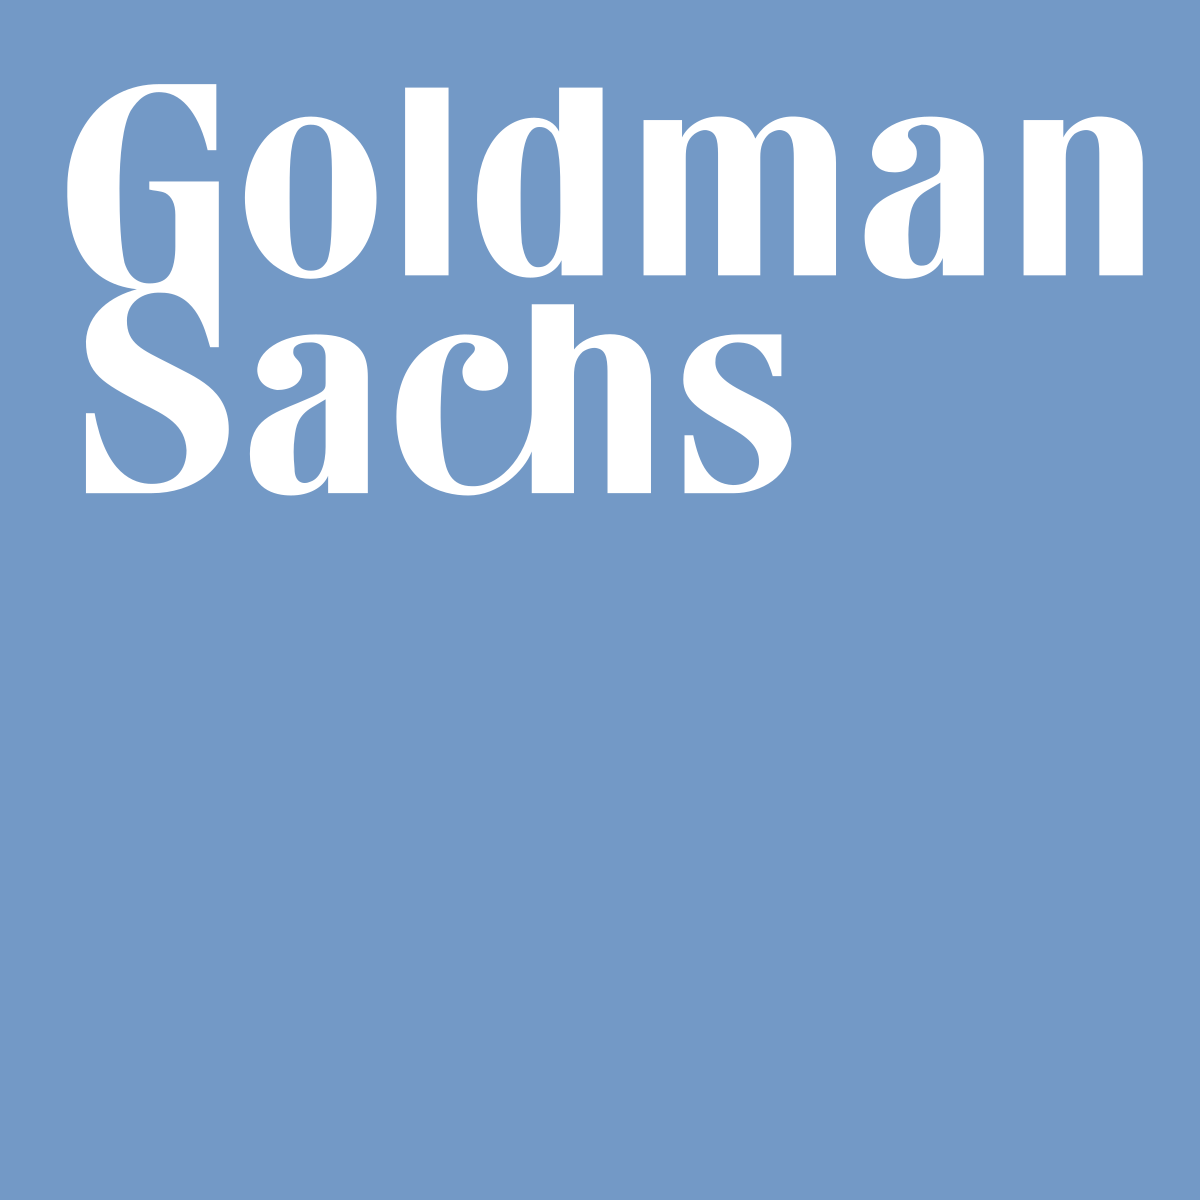 Goldman Sachs Bengaluru Software Engineer job 2021